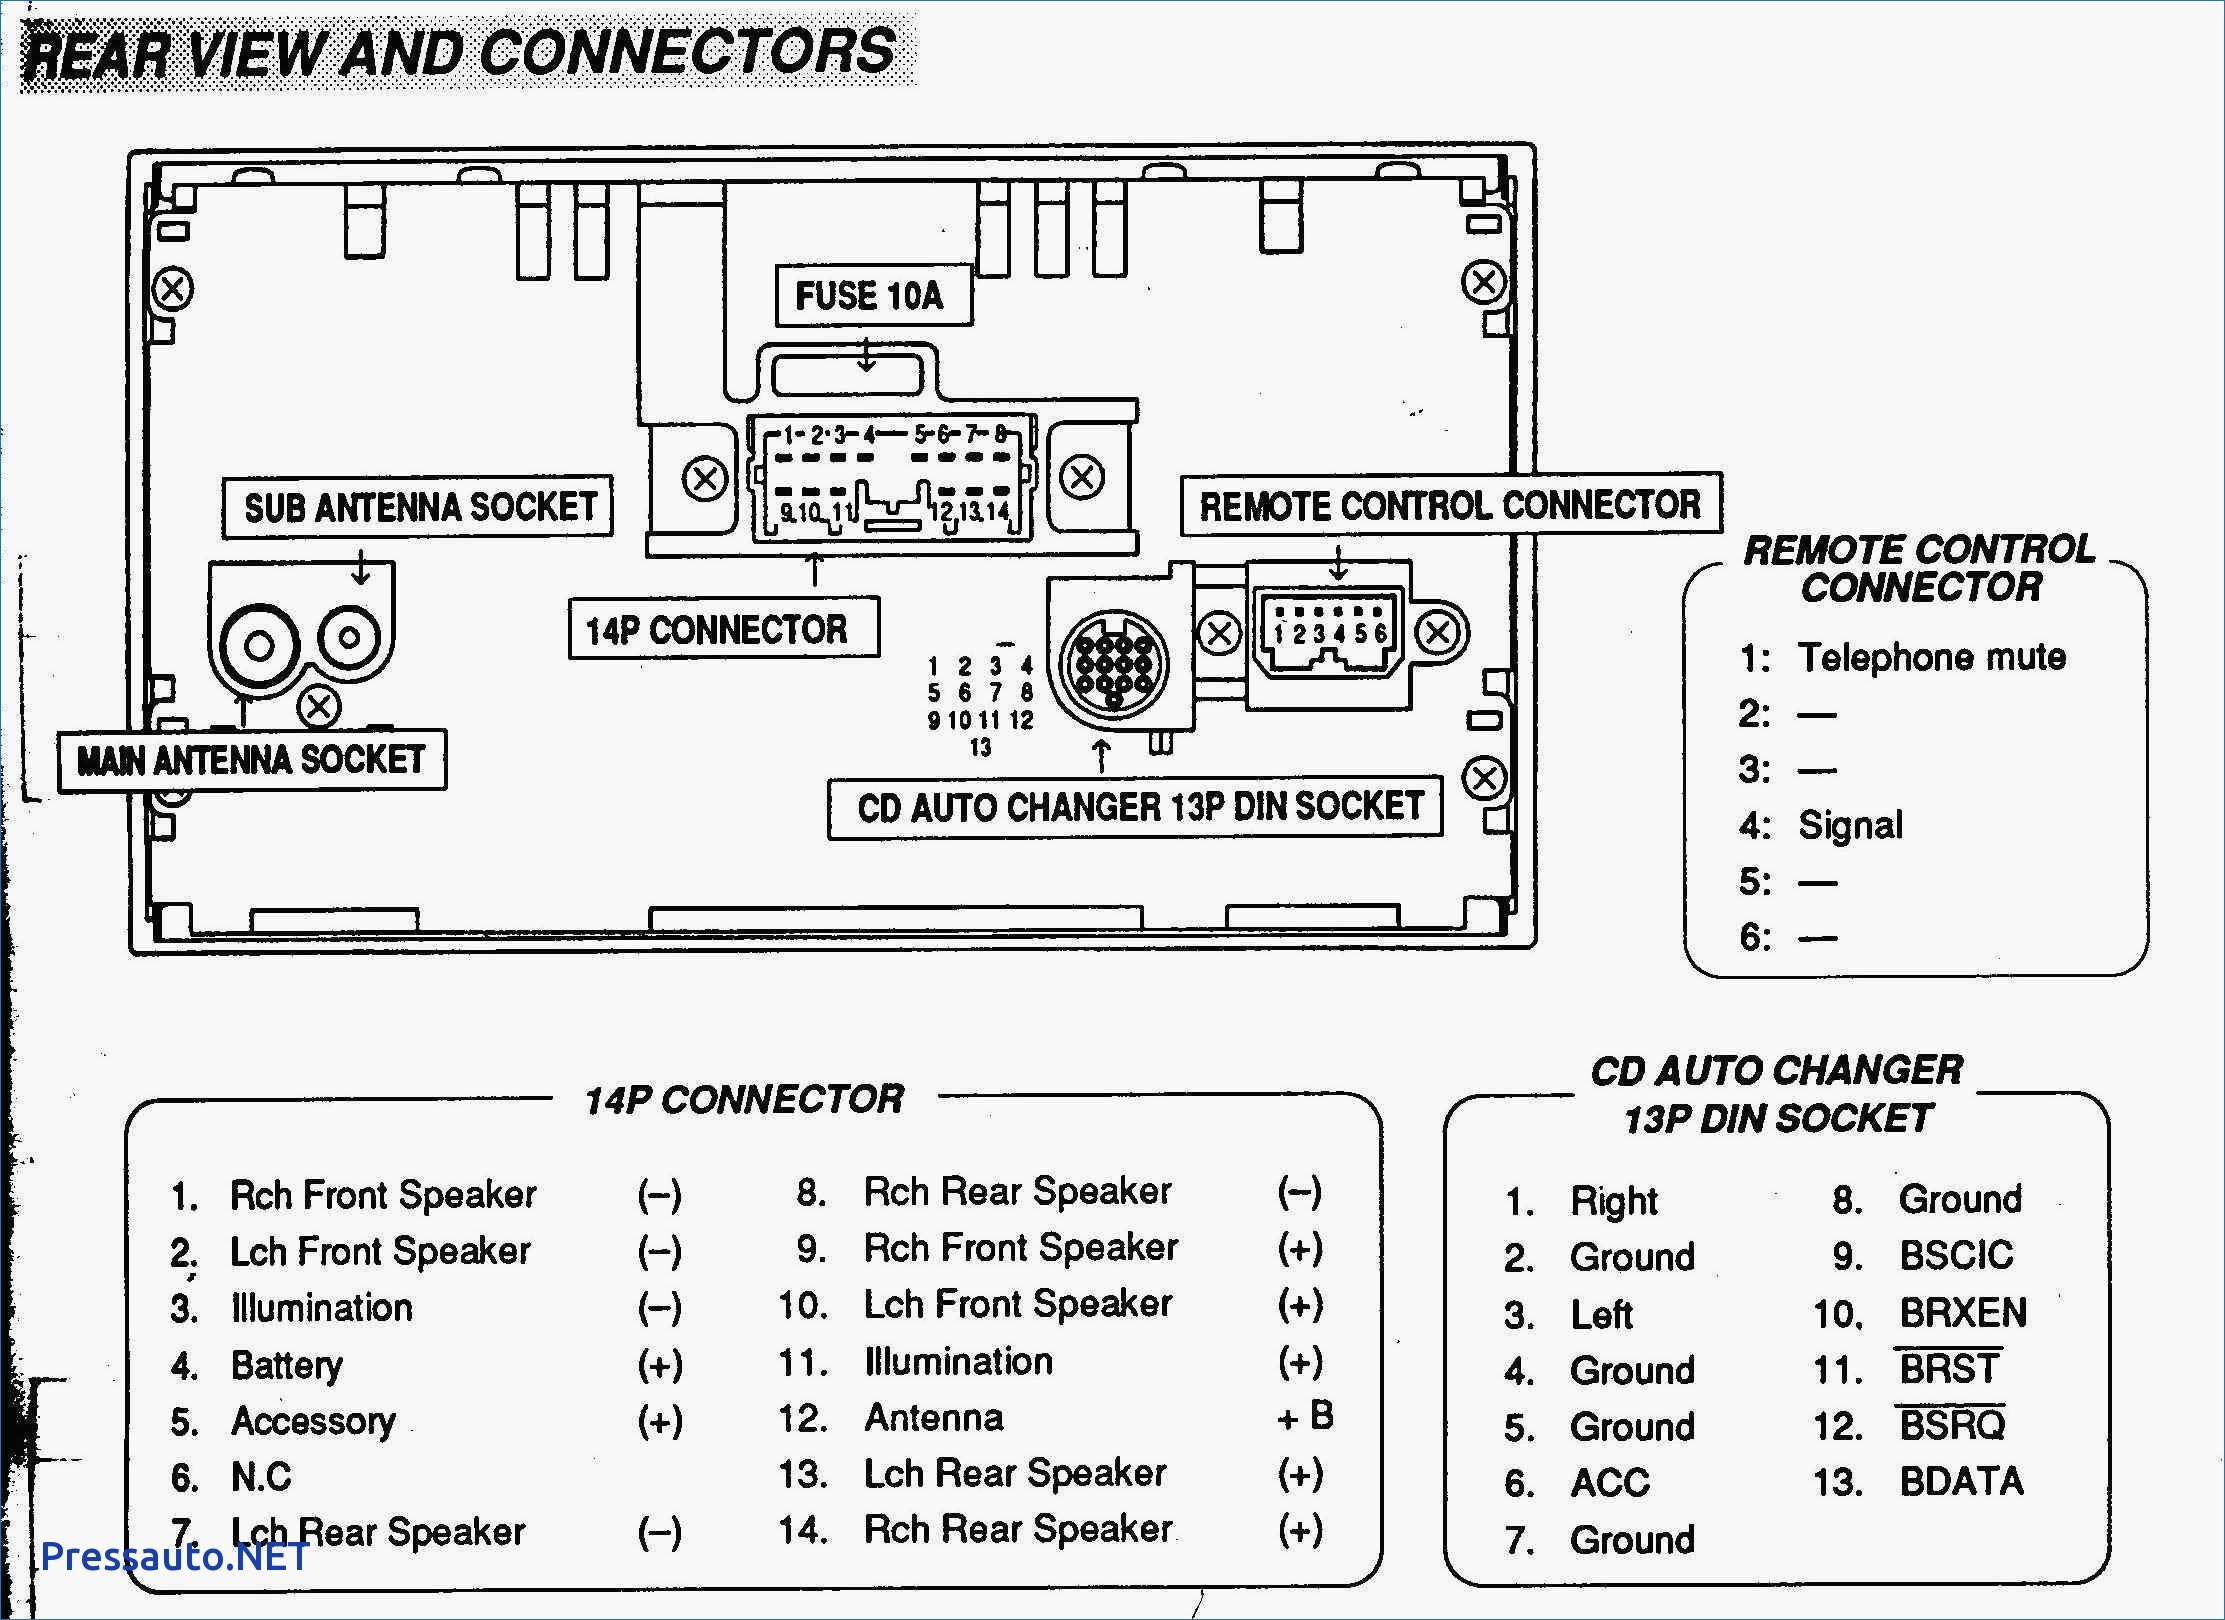 2001 Vw Jetta Engine Diagram 03 Jetta 2 0 Engine Diagram Another Blog About Wiring Diagram • Of 2001 Vw Jetta Engine Diagram